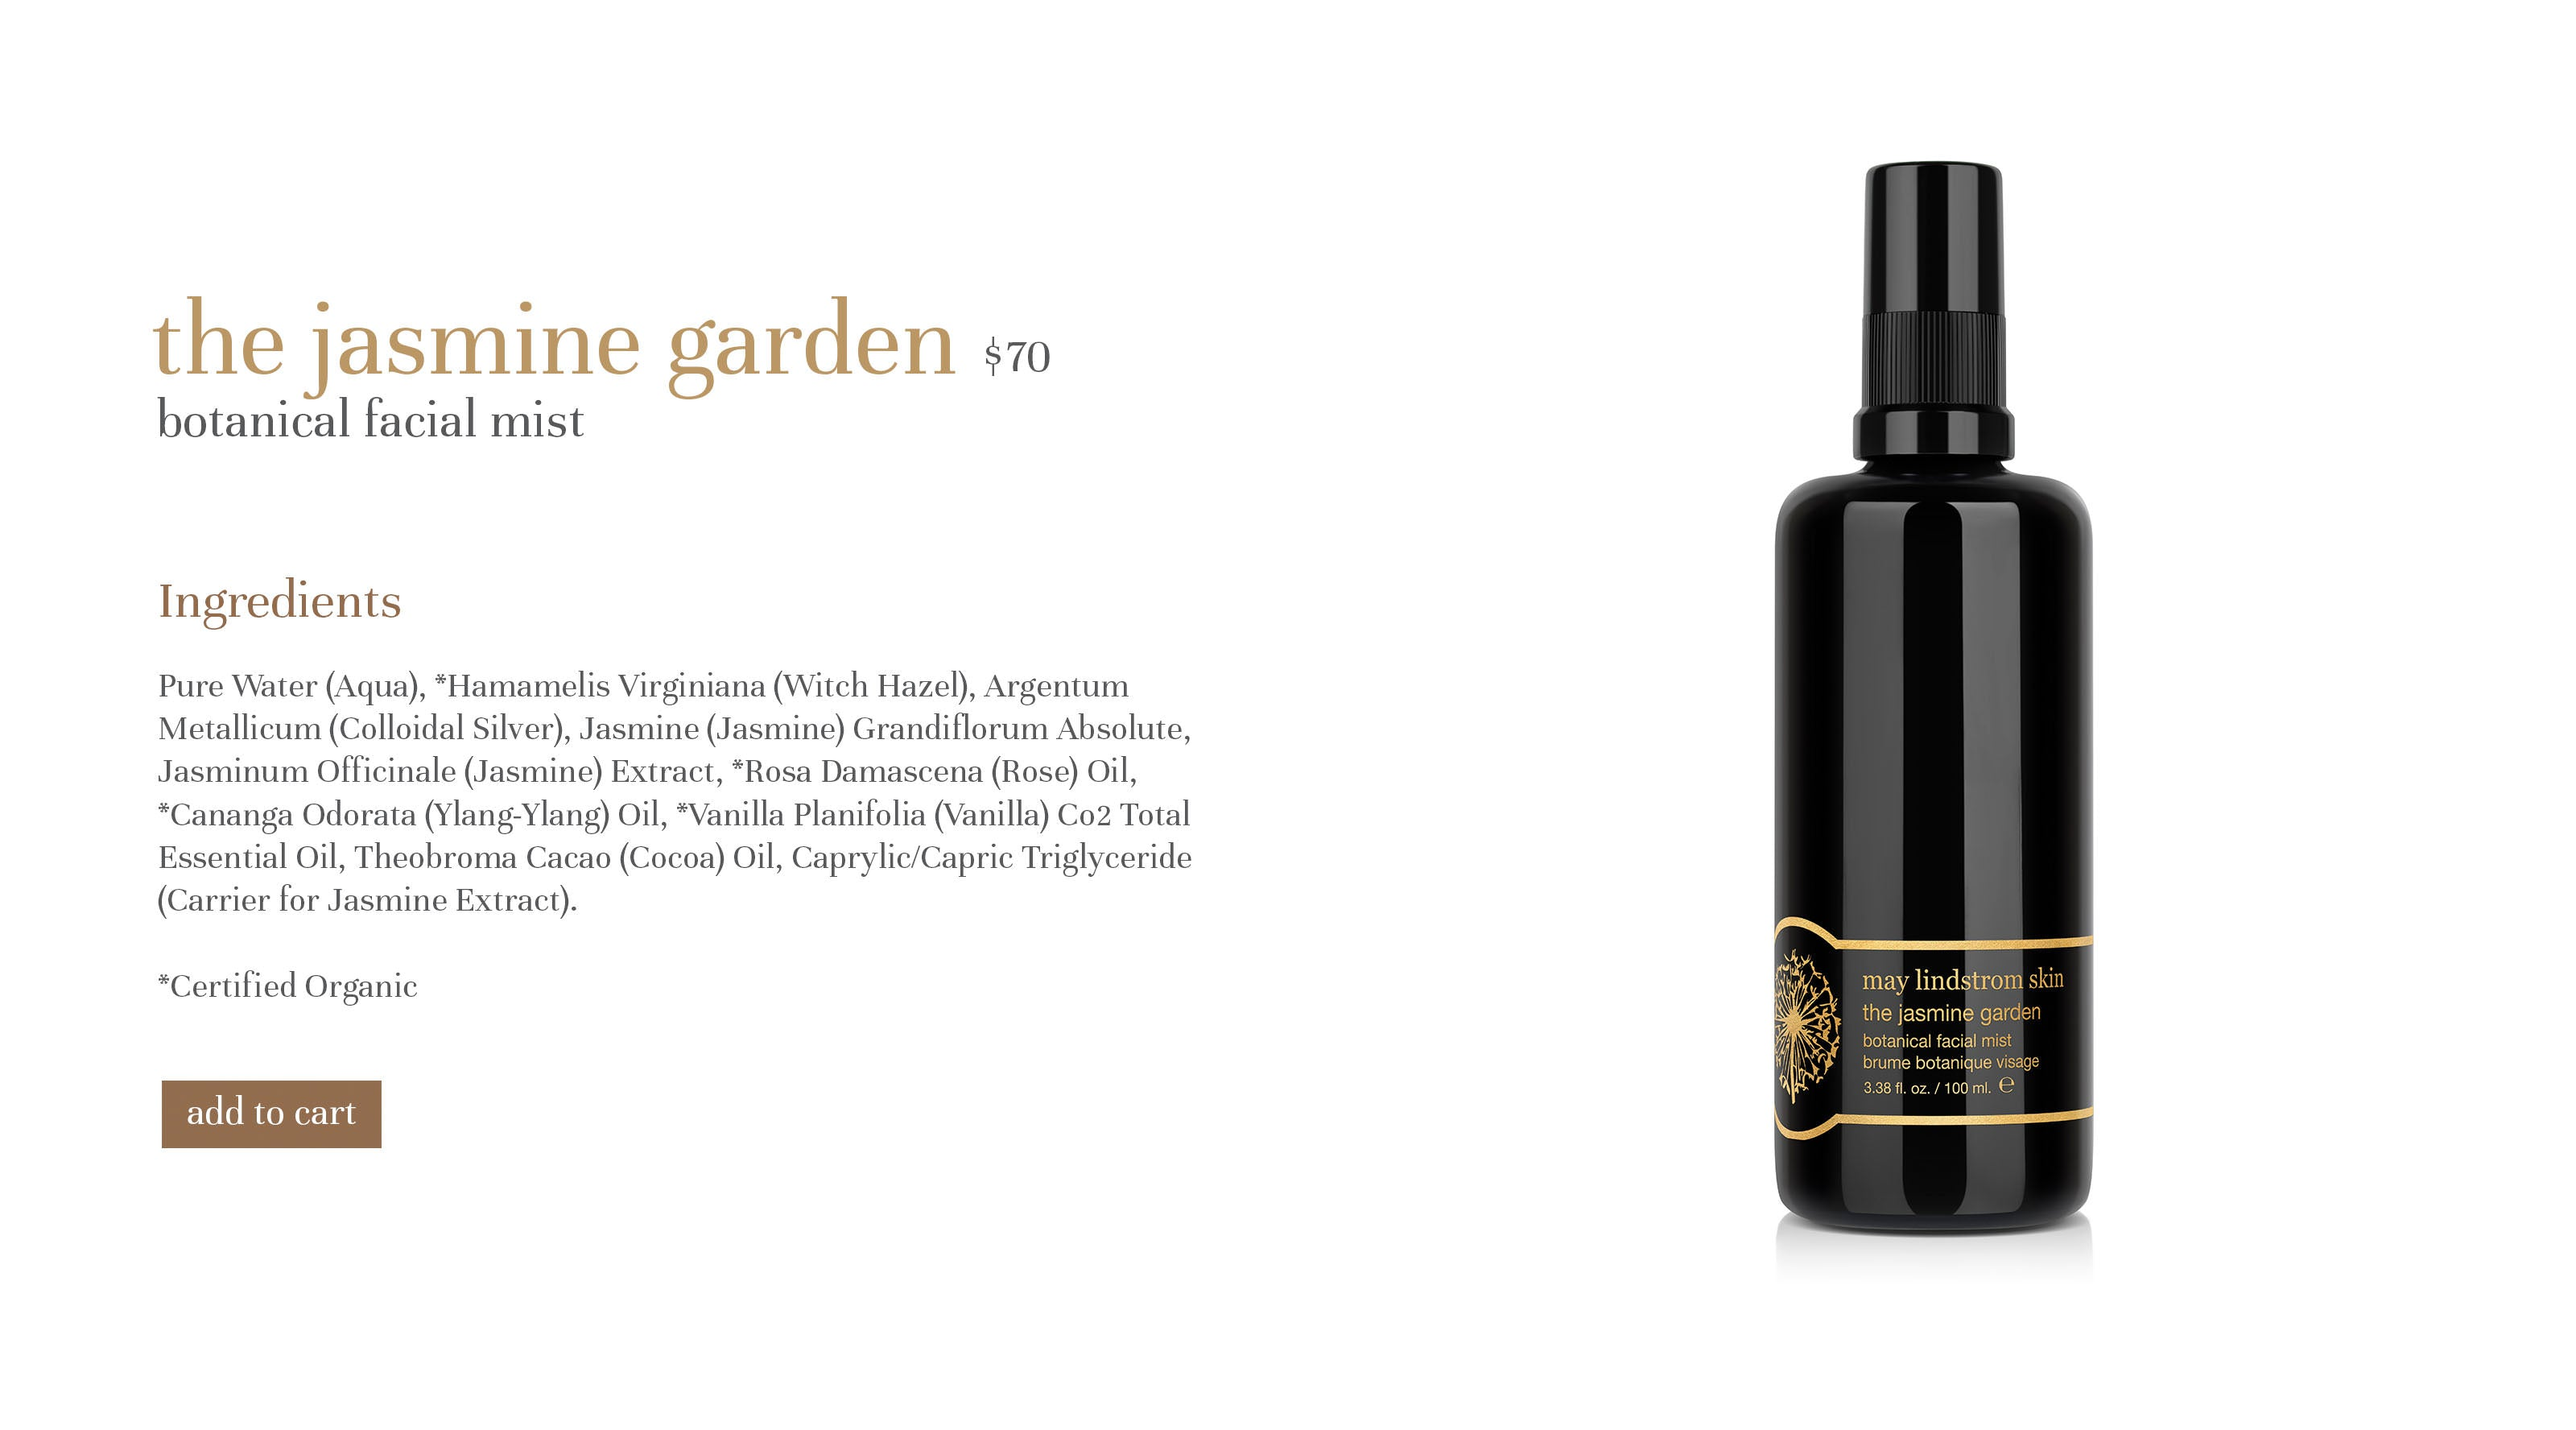 the jasmine garden $60 botanical facial mist Ingredients Pure Water (Aqua), *Hamamelis Virginiana (Witch Hazel), Argentum Metallicum (Colloidal Silver), Jasmine (Jasmine) Grandiflorum Absolute, Jasminum Officinale (Jasmine) Extract, *Rosa Damascena (Rose) Oil, *Cananga Odorata (Ylang-Ylang) Oil, *Vanilla Planifolia (Vanilla) Co2 Total Essential Oil, Theobroma Cacao (Cocoa) Oil, Caprylic/Capric Triglyceride (Carrier for Jasmine Extract). *Certified Organic